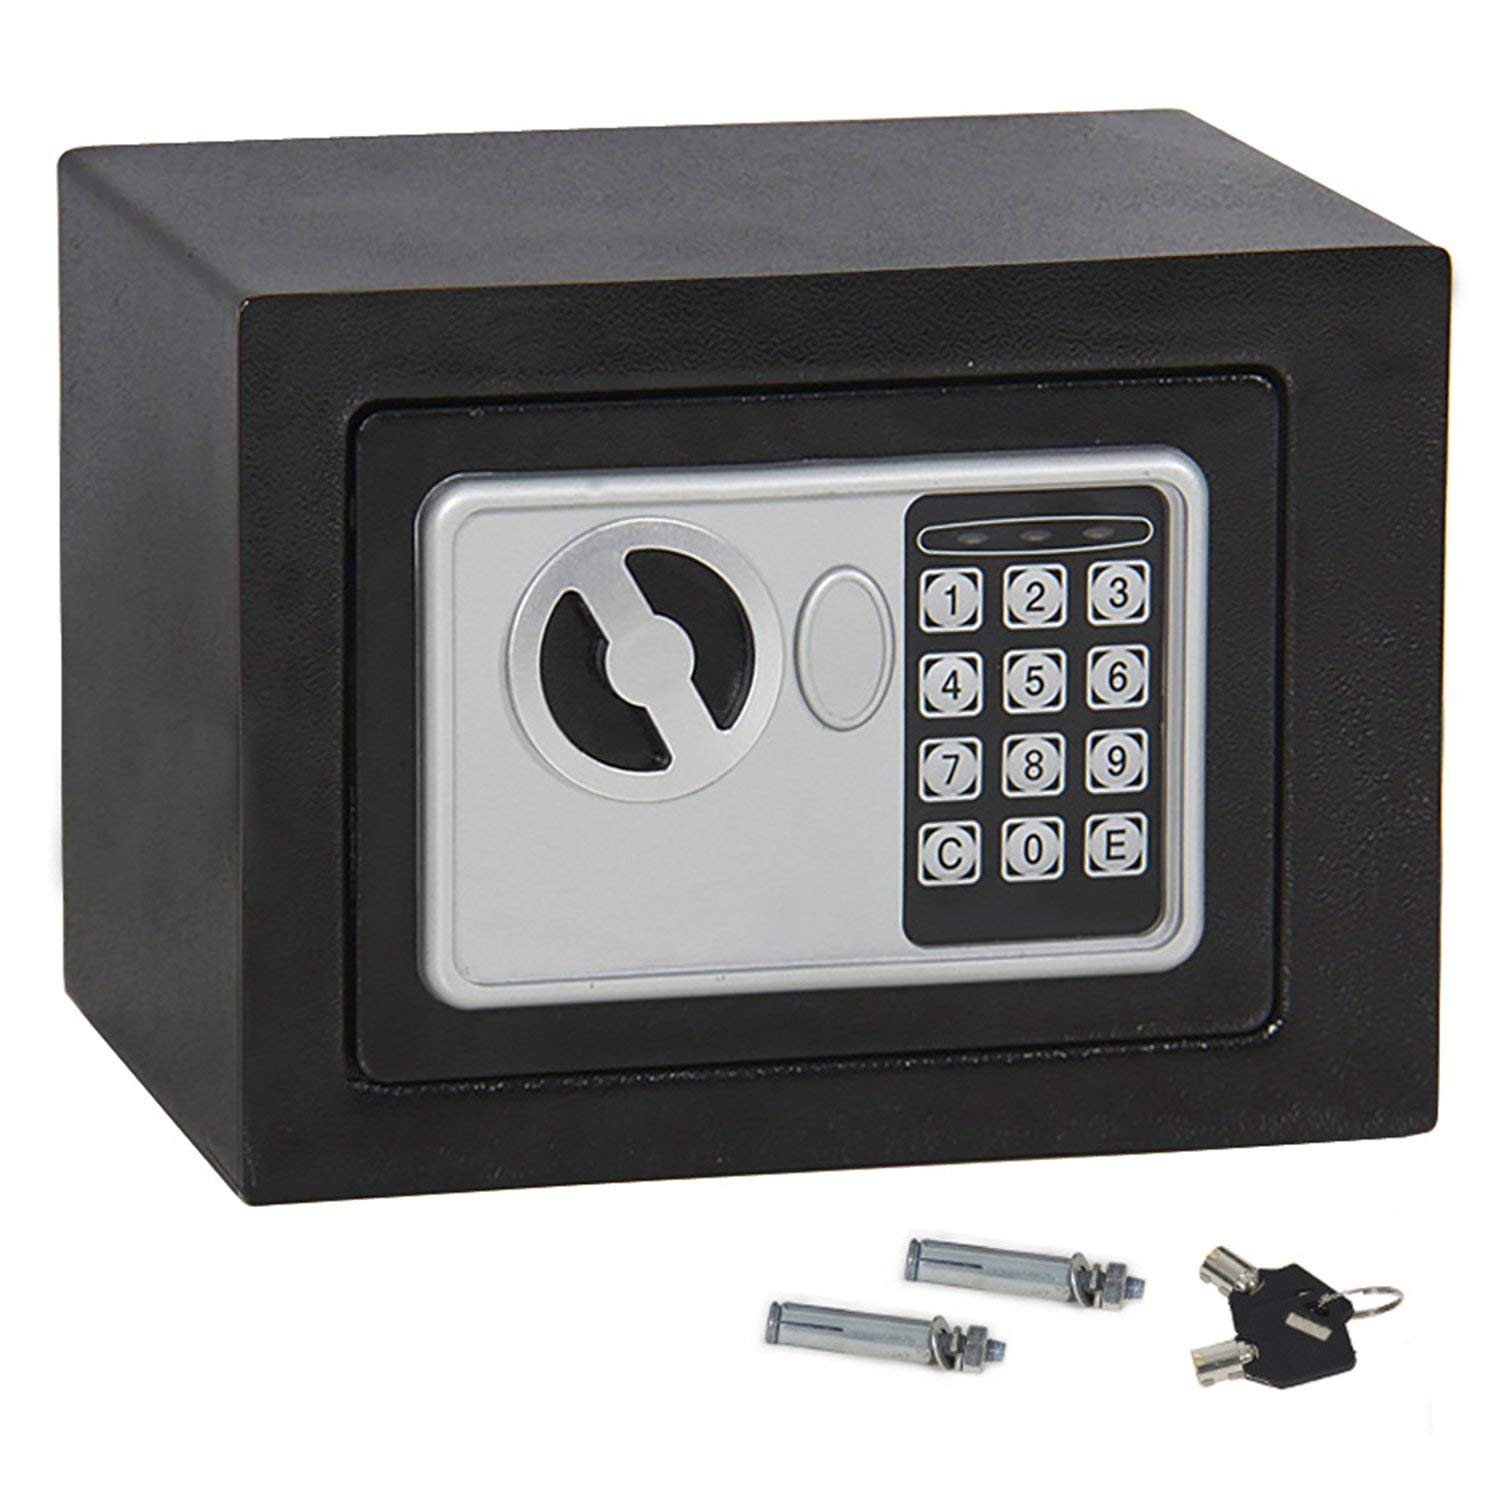 Oteymart Electronic Digital Security Lock Box Wall Cabinet Safe for Gun Jewelry Cash Valuable Home Office Hotel, 0.23 Cubic Feet